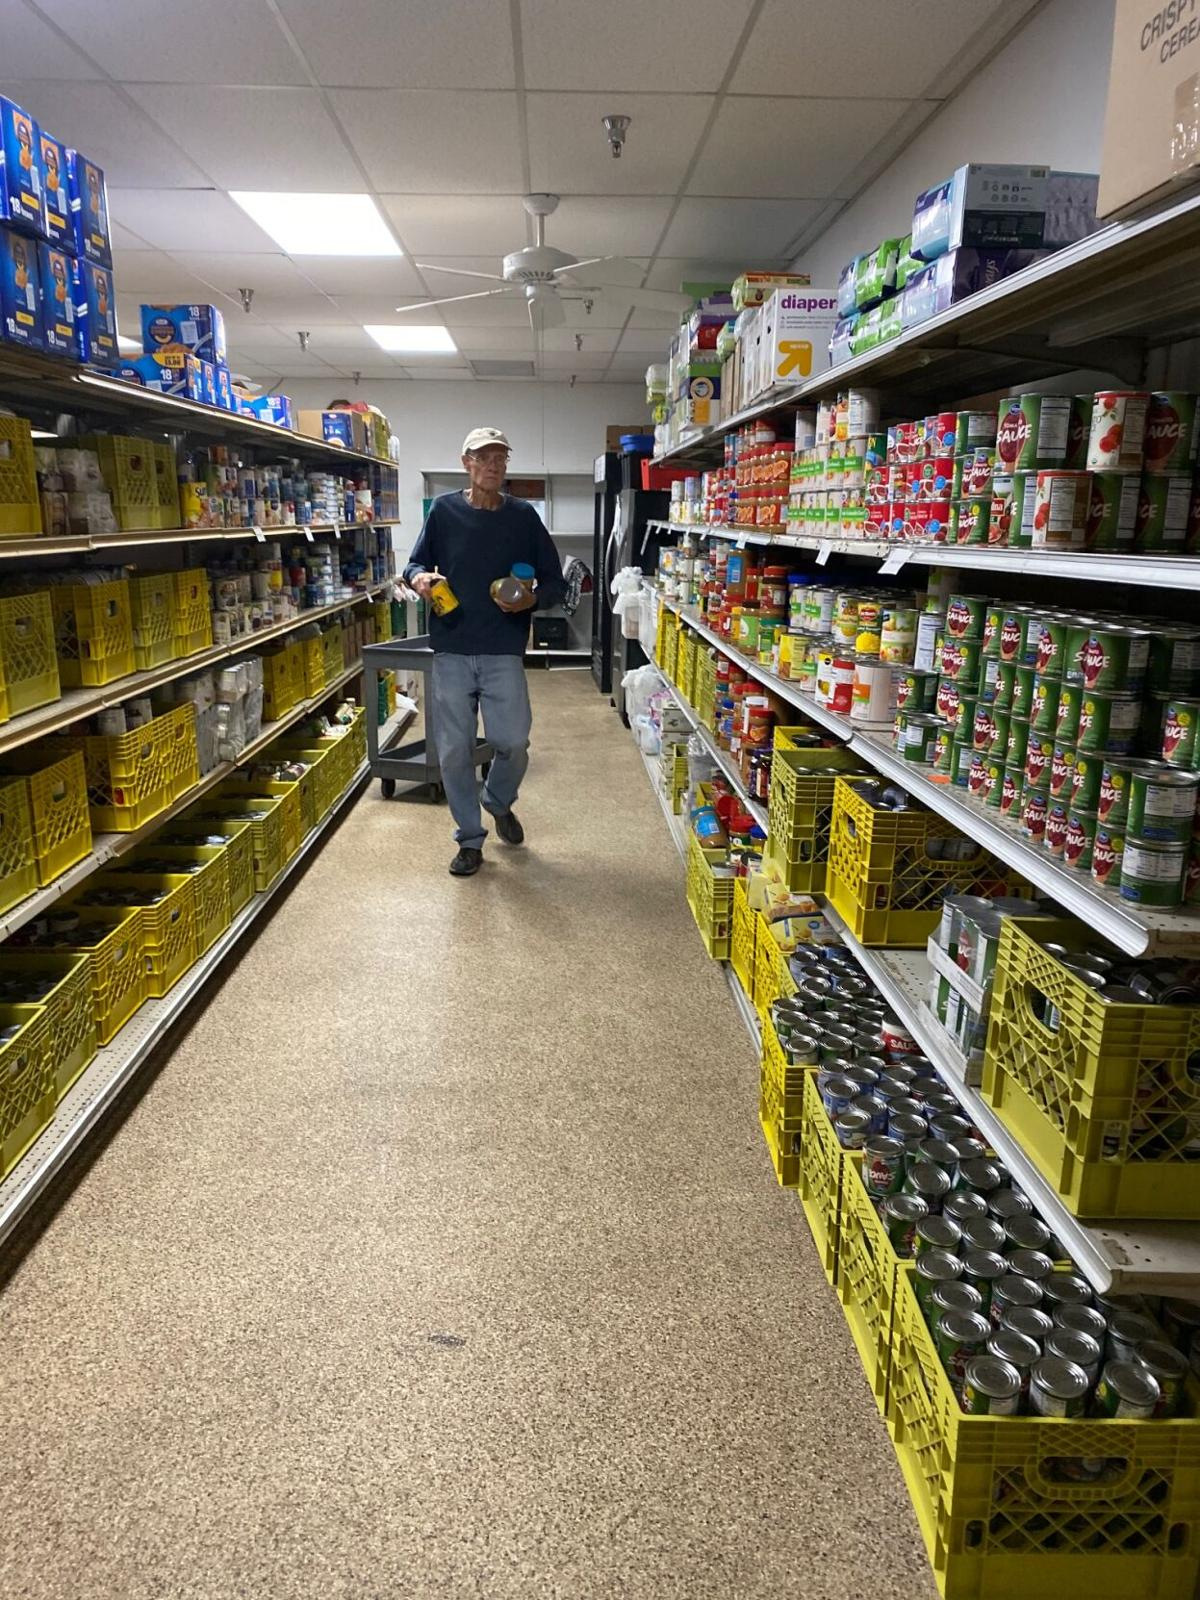 PVEFB_THE CANNED FOOD IS MOVED ONE CAN AT A TIME.jpg